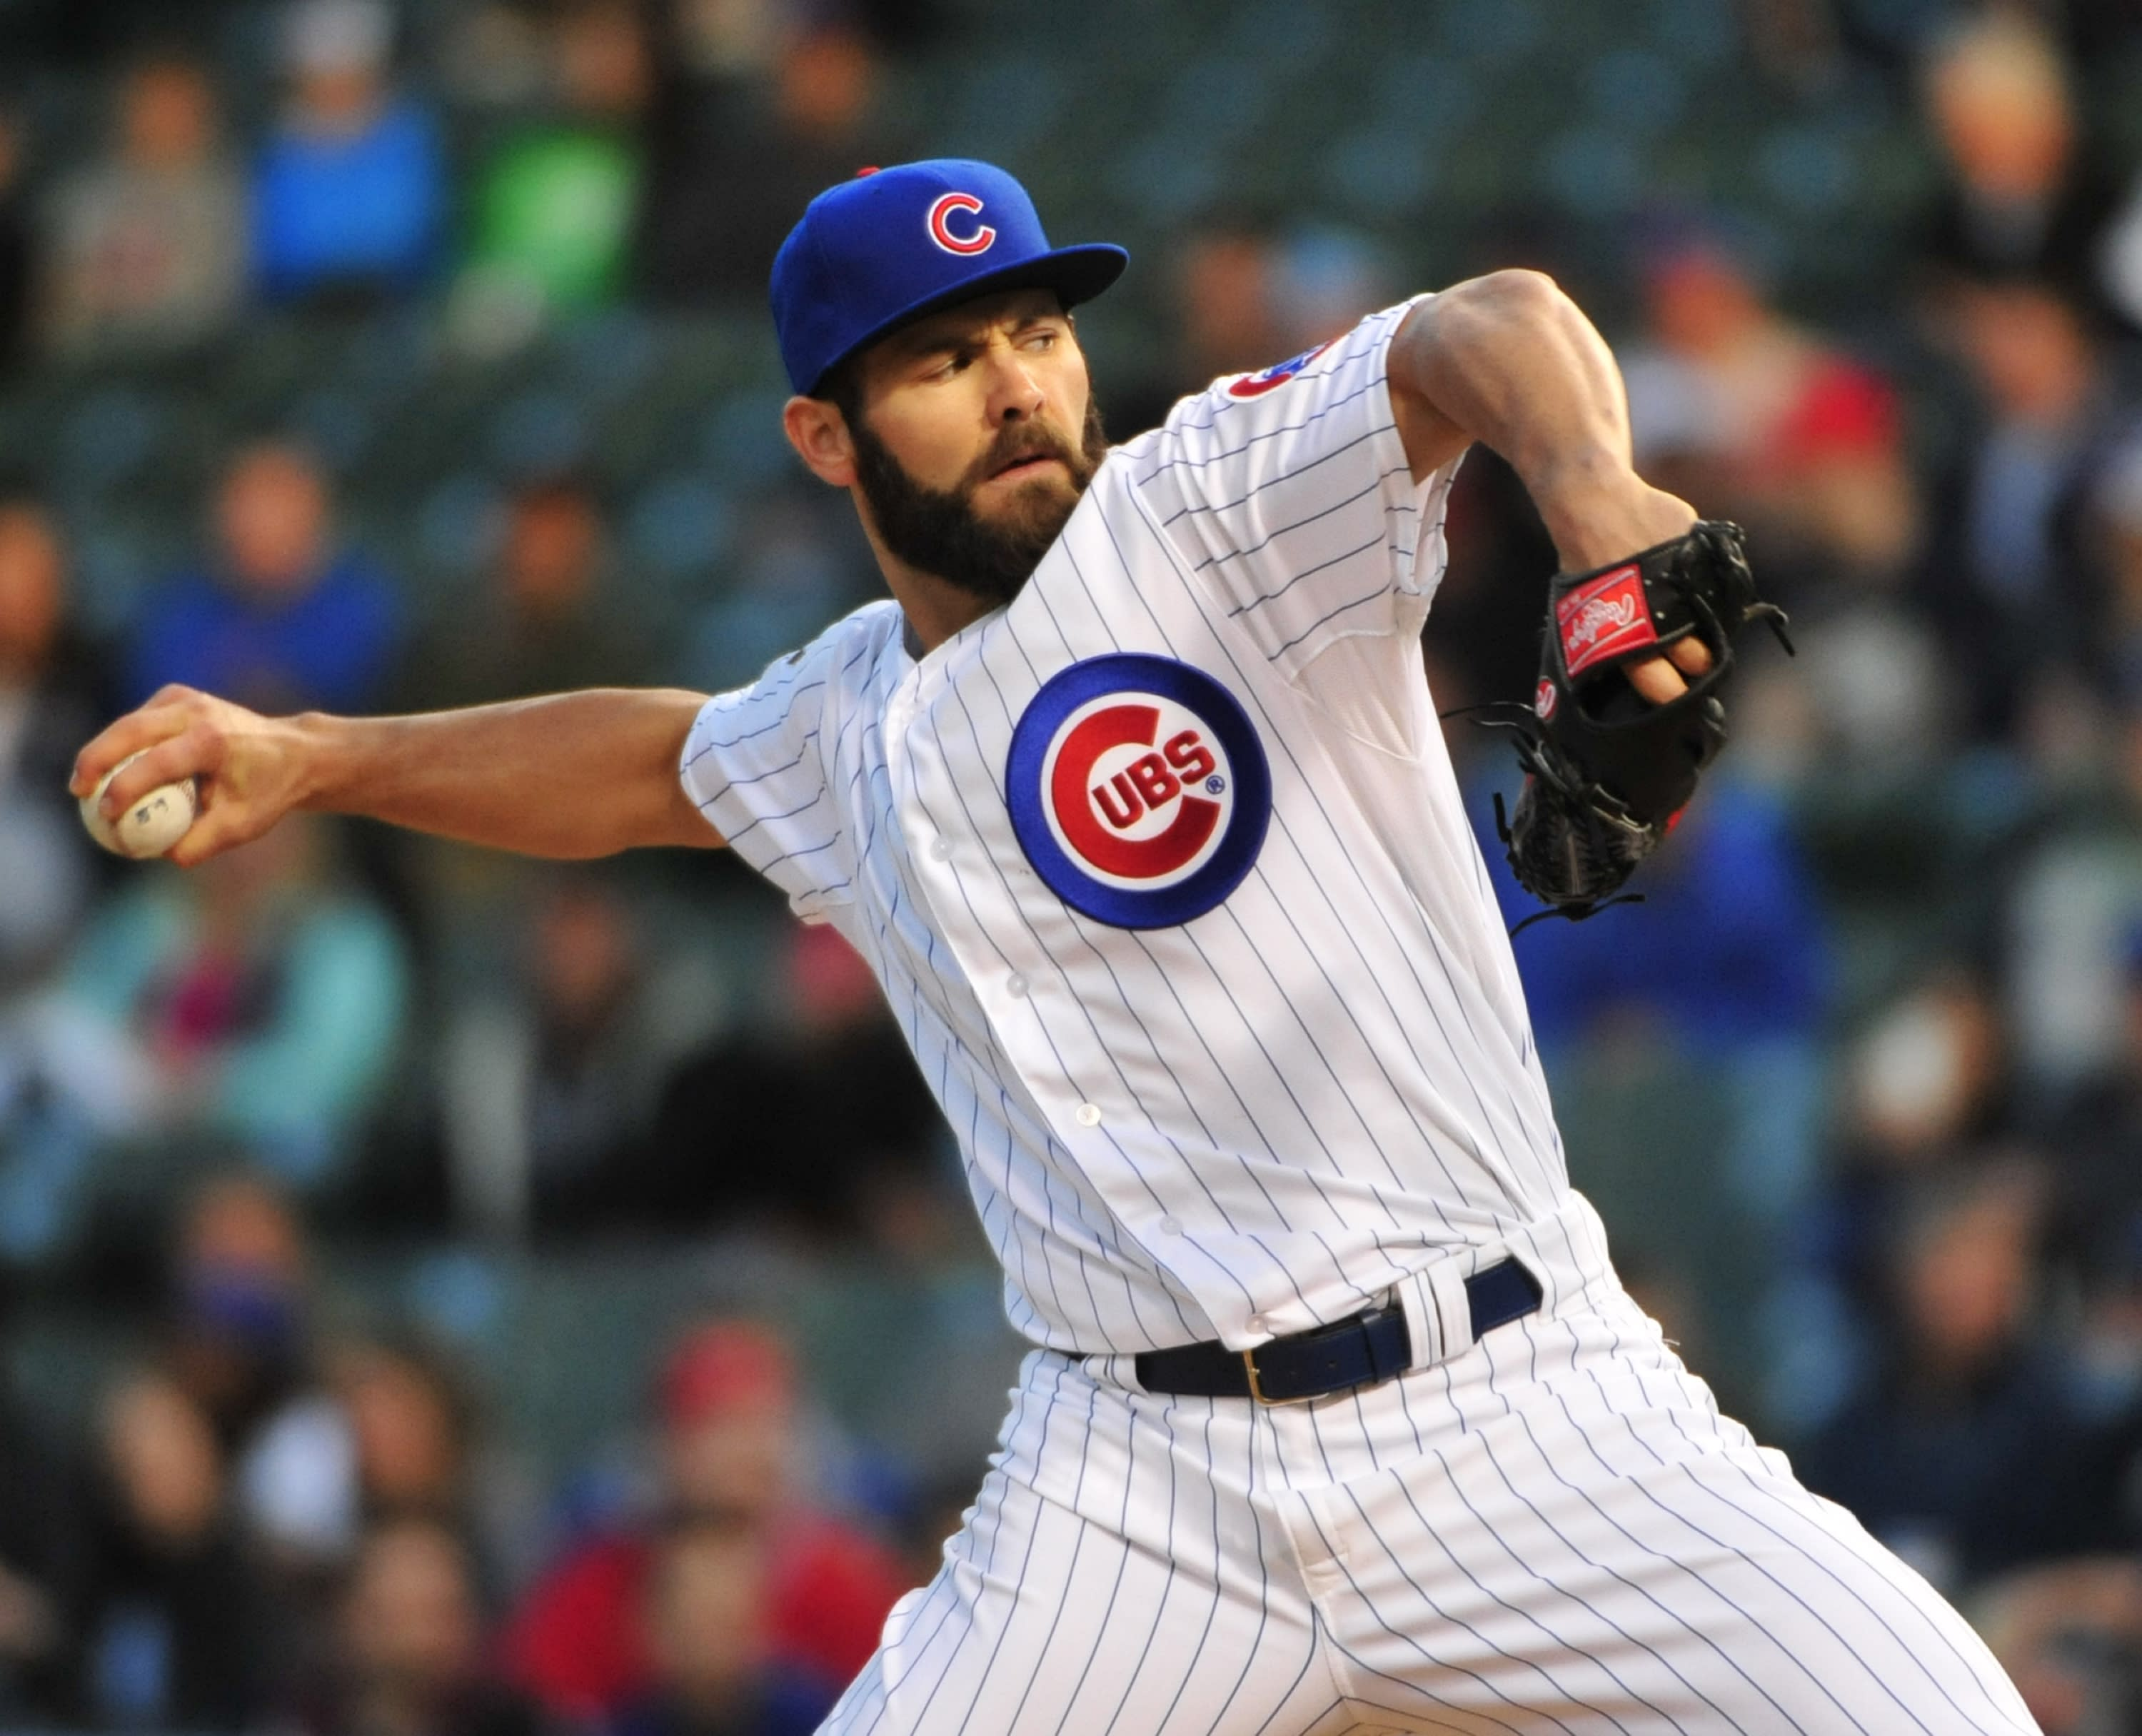 Daily Dime: Jake Arrieta, Coors Field, Mariners look appealing on Monday